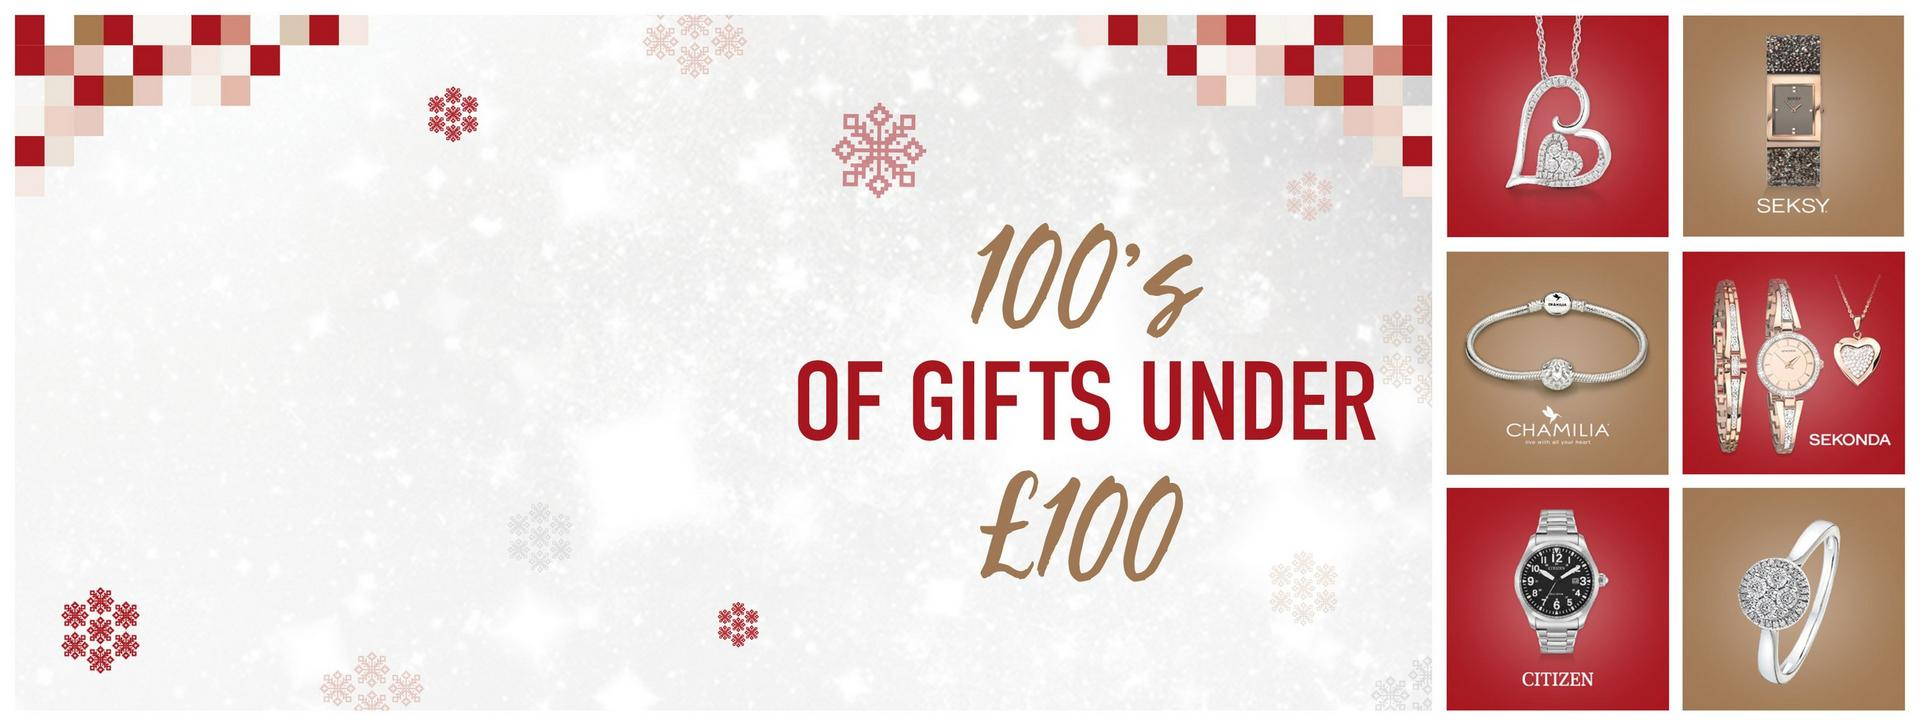 Hundred's of Gifts Under £100 - Shop Now